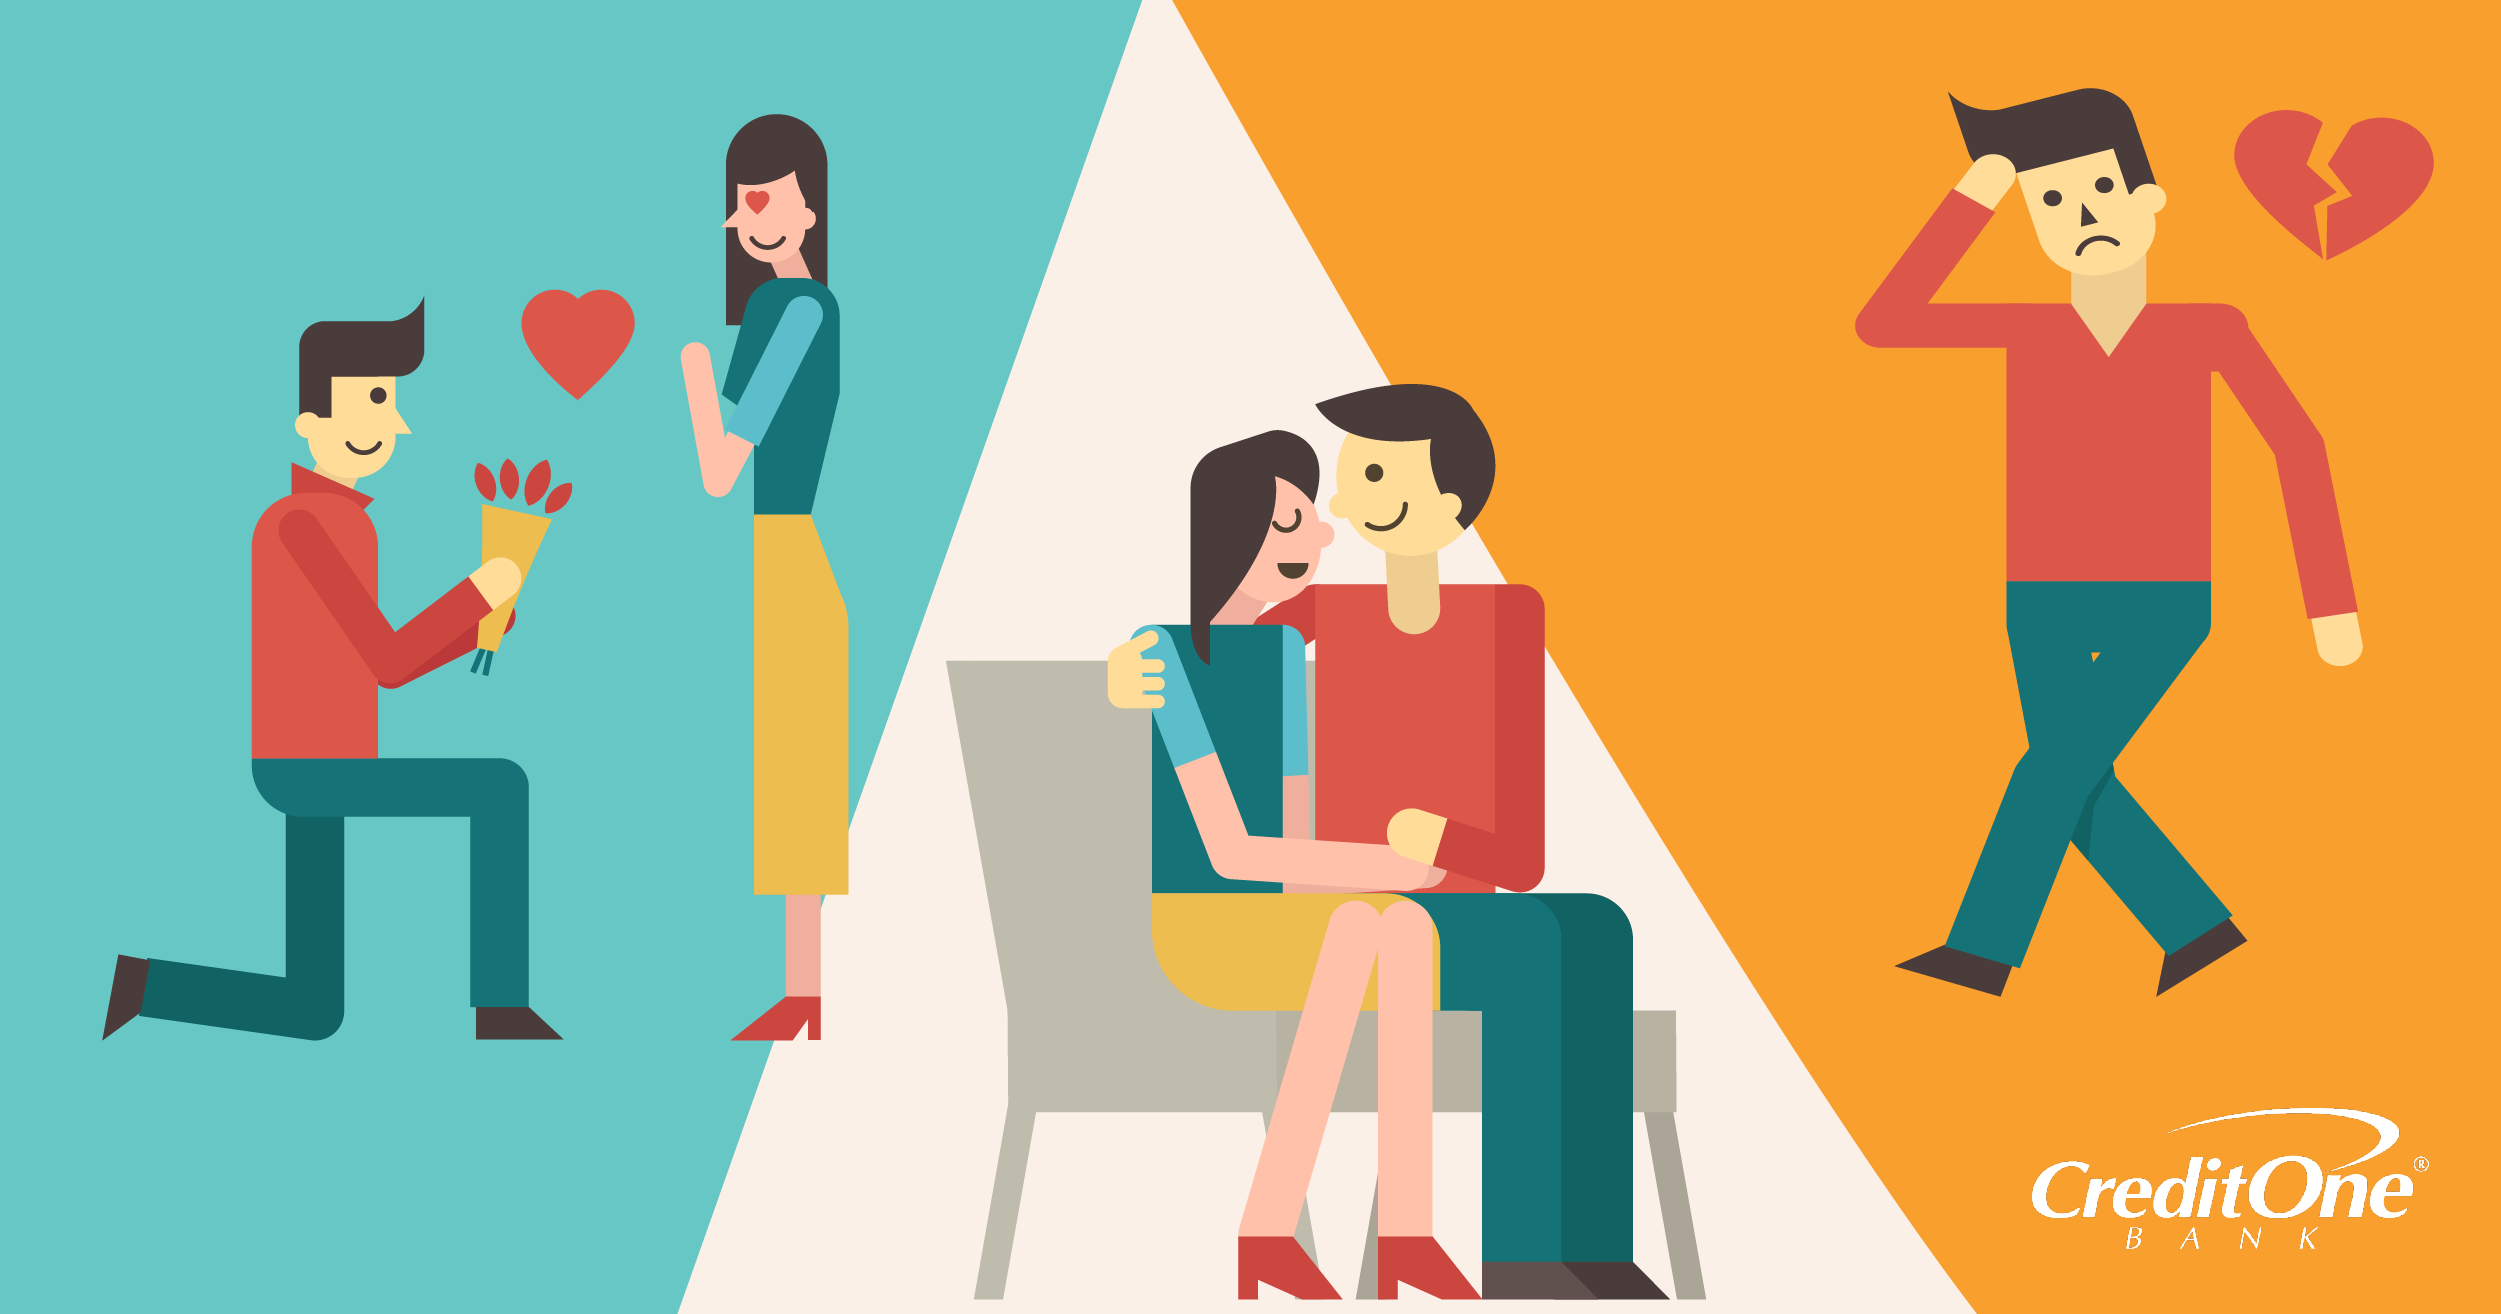 Credit One Bank Card Member Survey: Finances, Credit & Romance [Infographic]